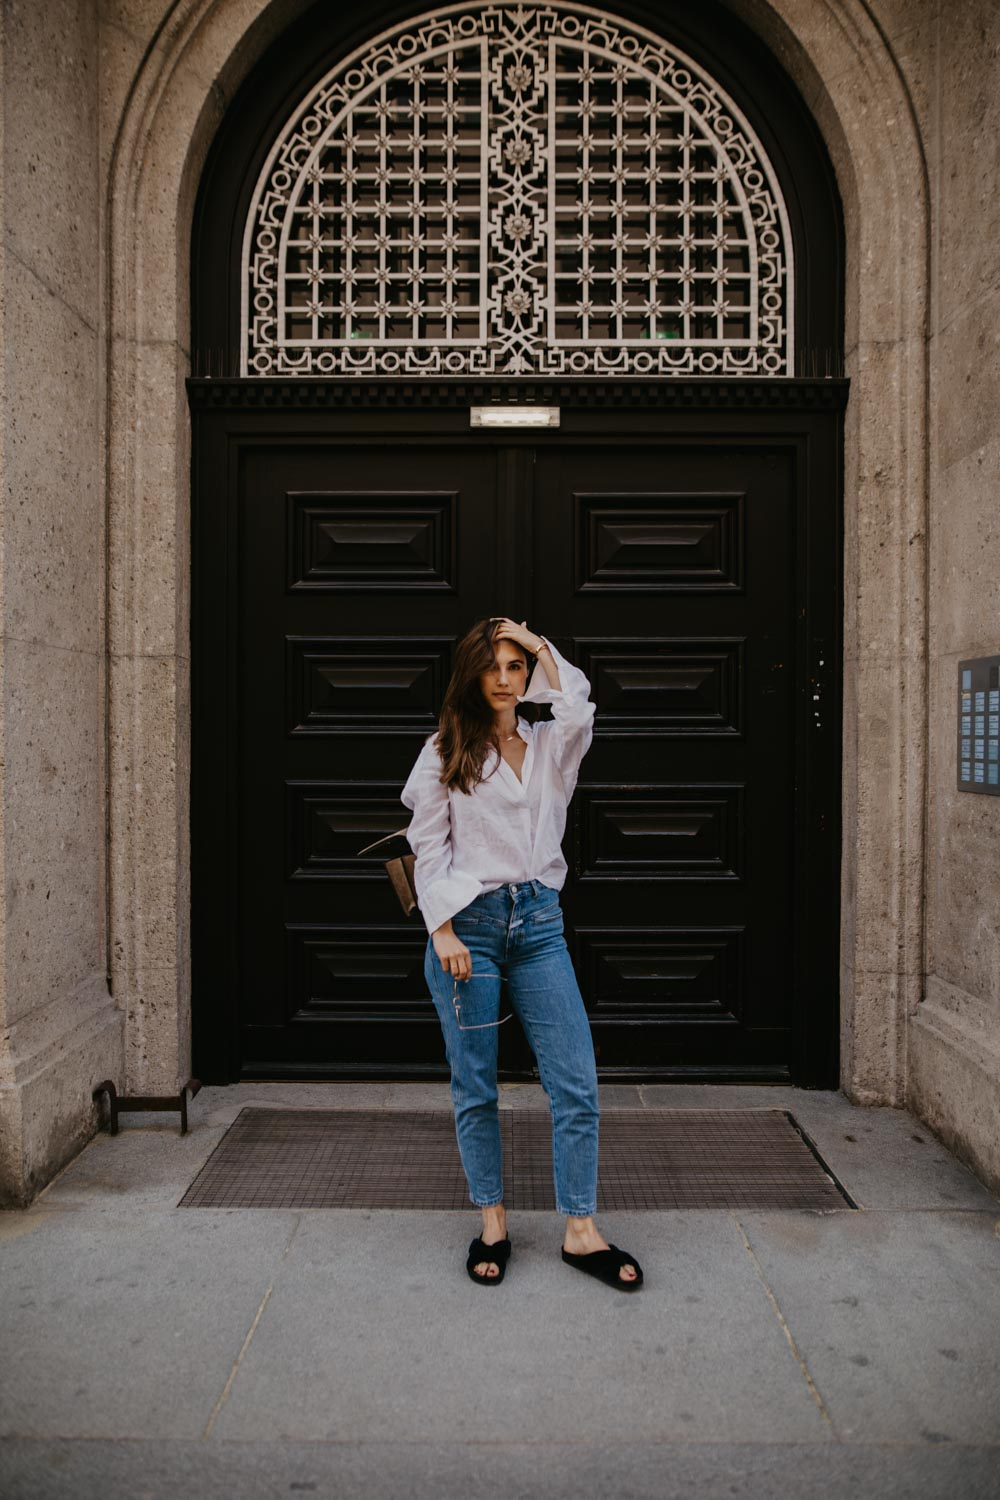 Back to basics: Denim & Linen | Capsule Wardrobe | You Rock My Life